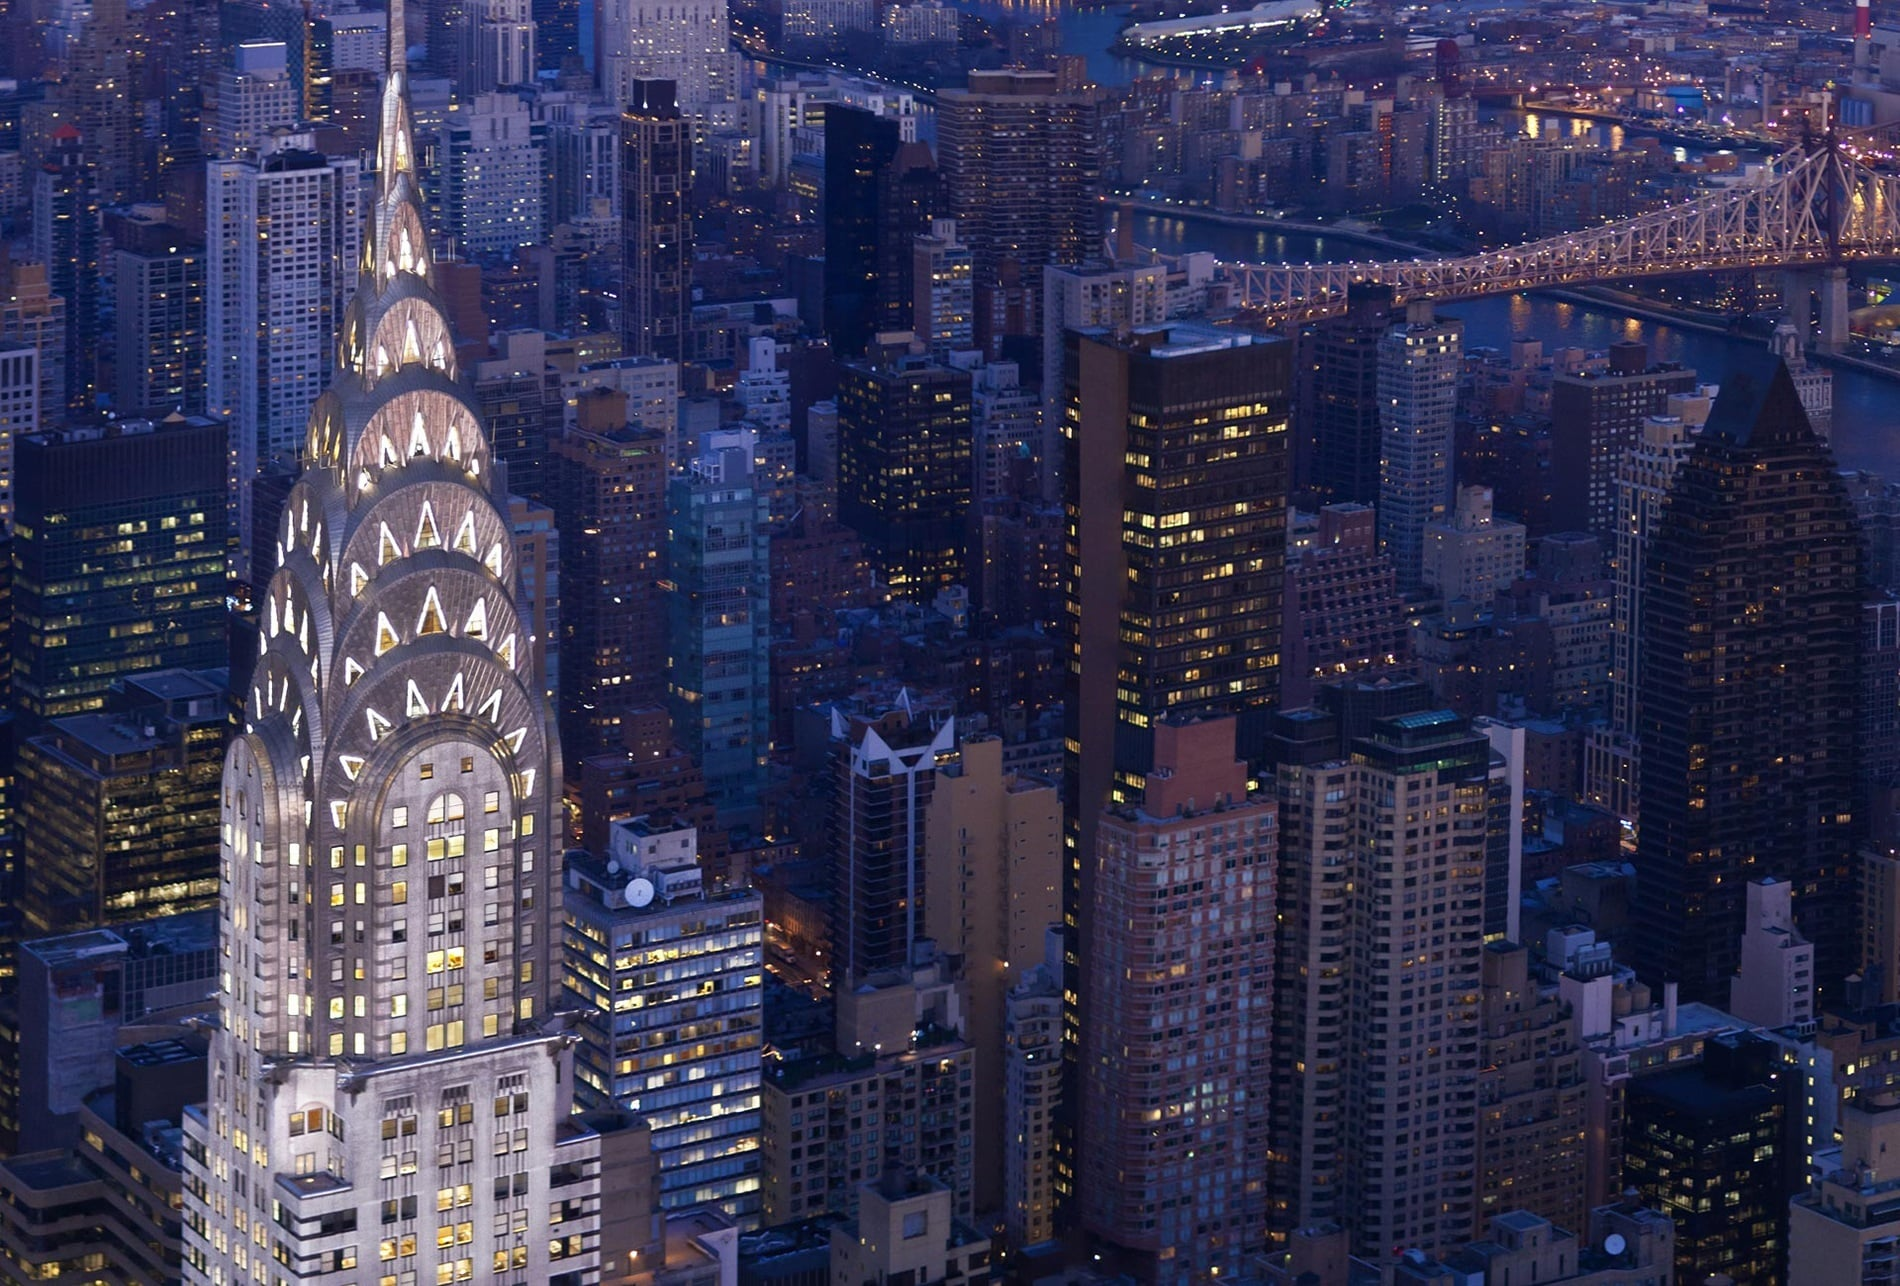 chrysler building l 39 un des buildings les plus connus au monde. Black Bedroom Furniture Sets. Home Design Ideas